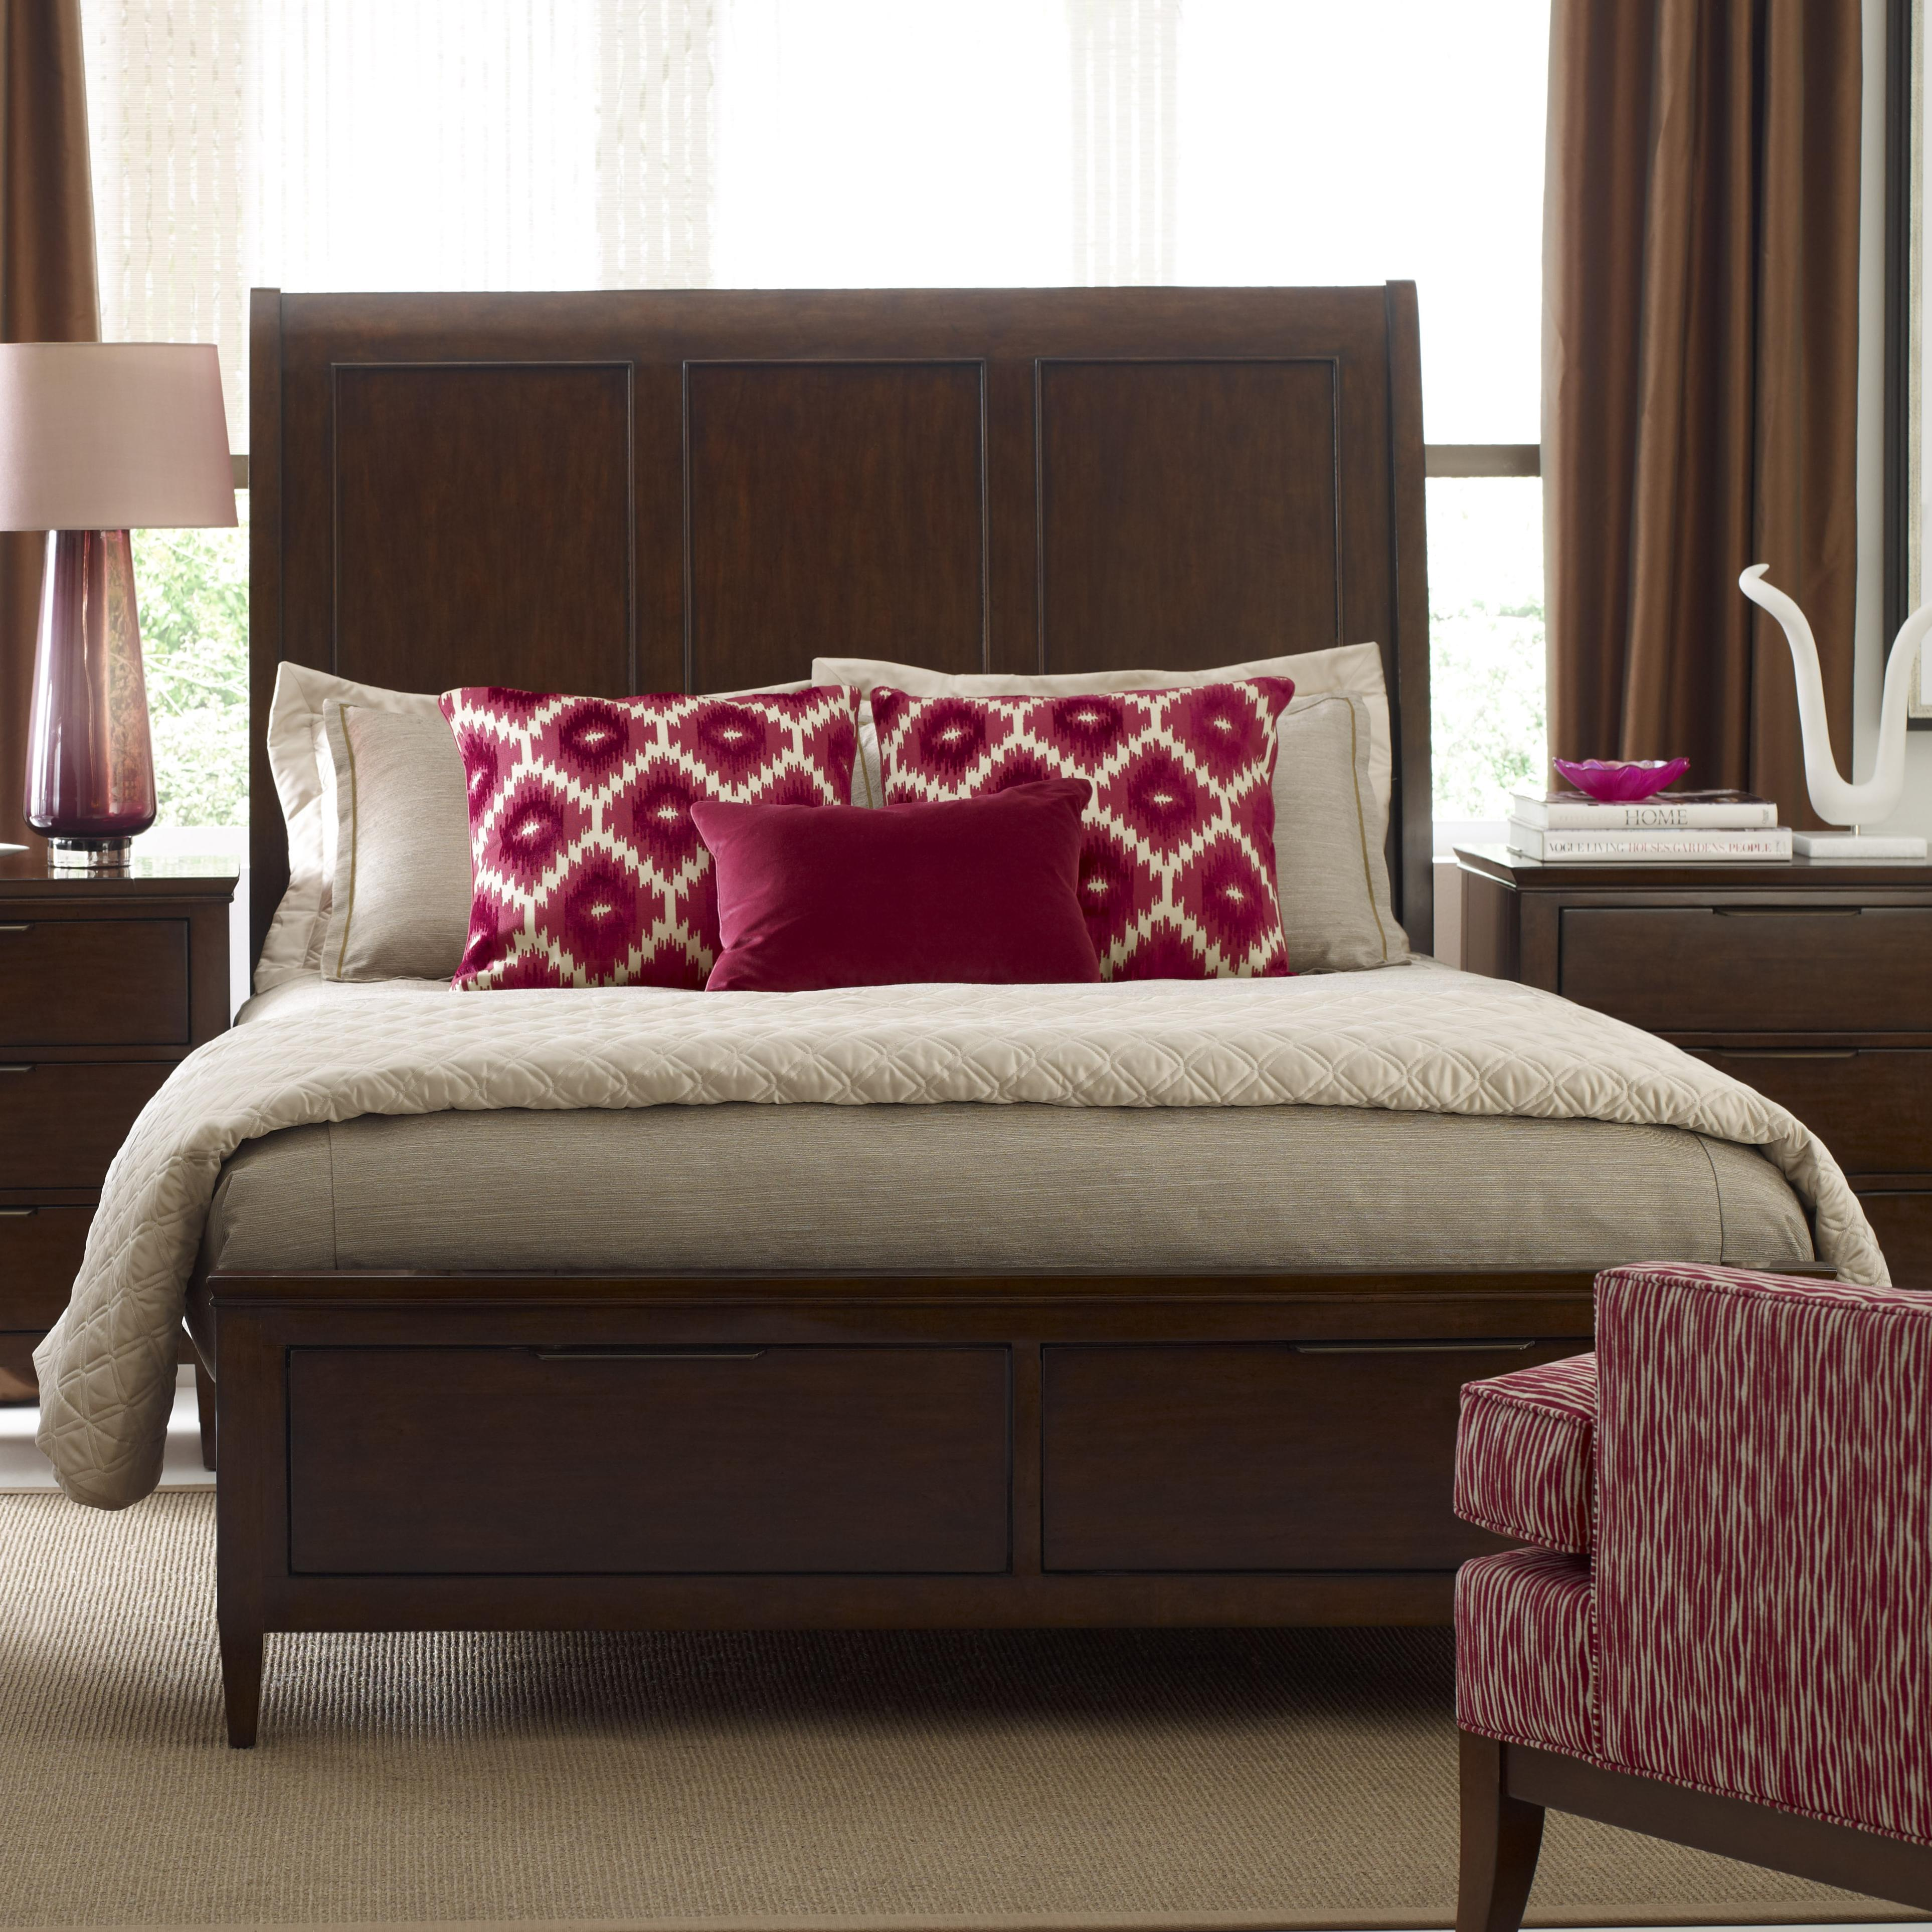 Kincaid furniture elise caris king sleigh bed with storage for Hudsons furniture